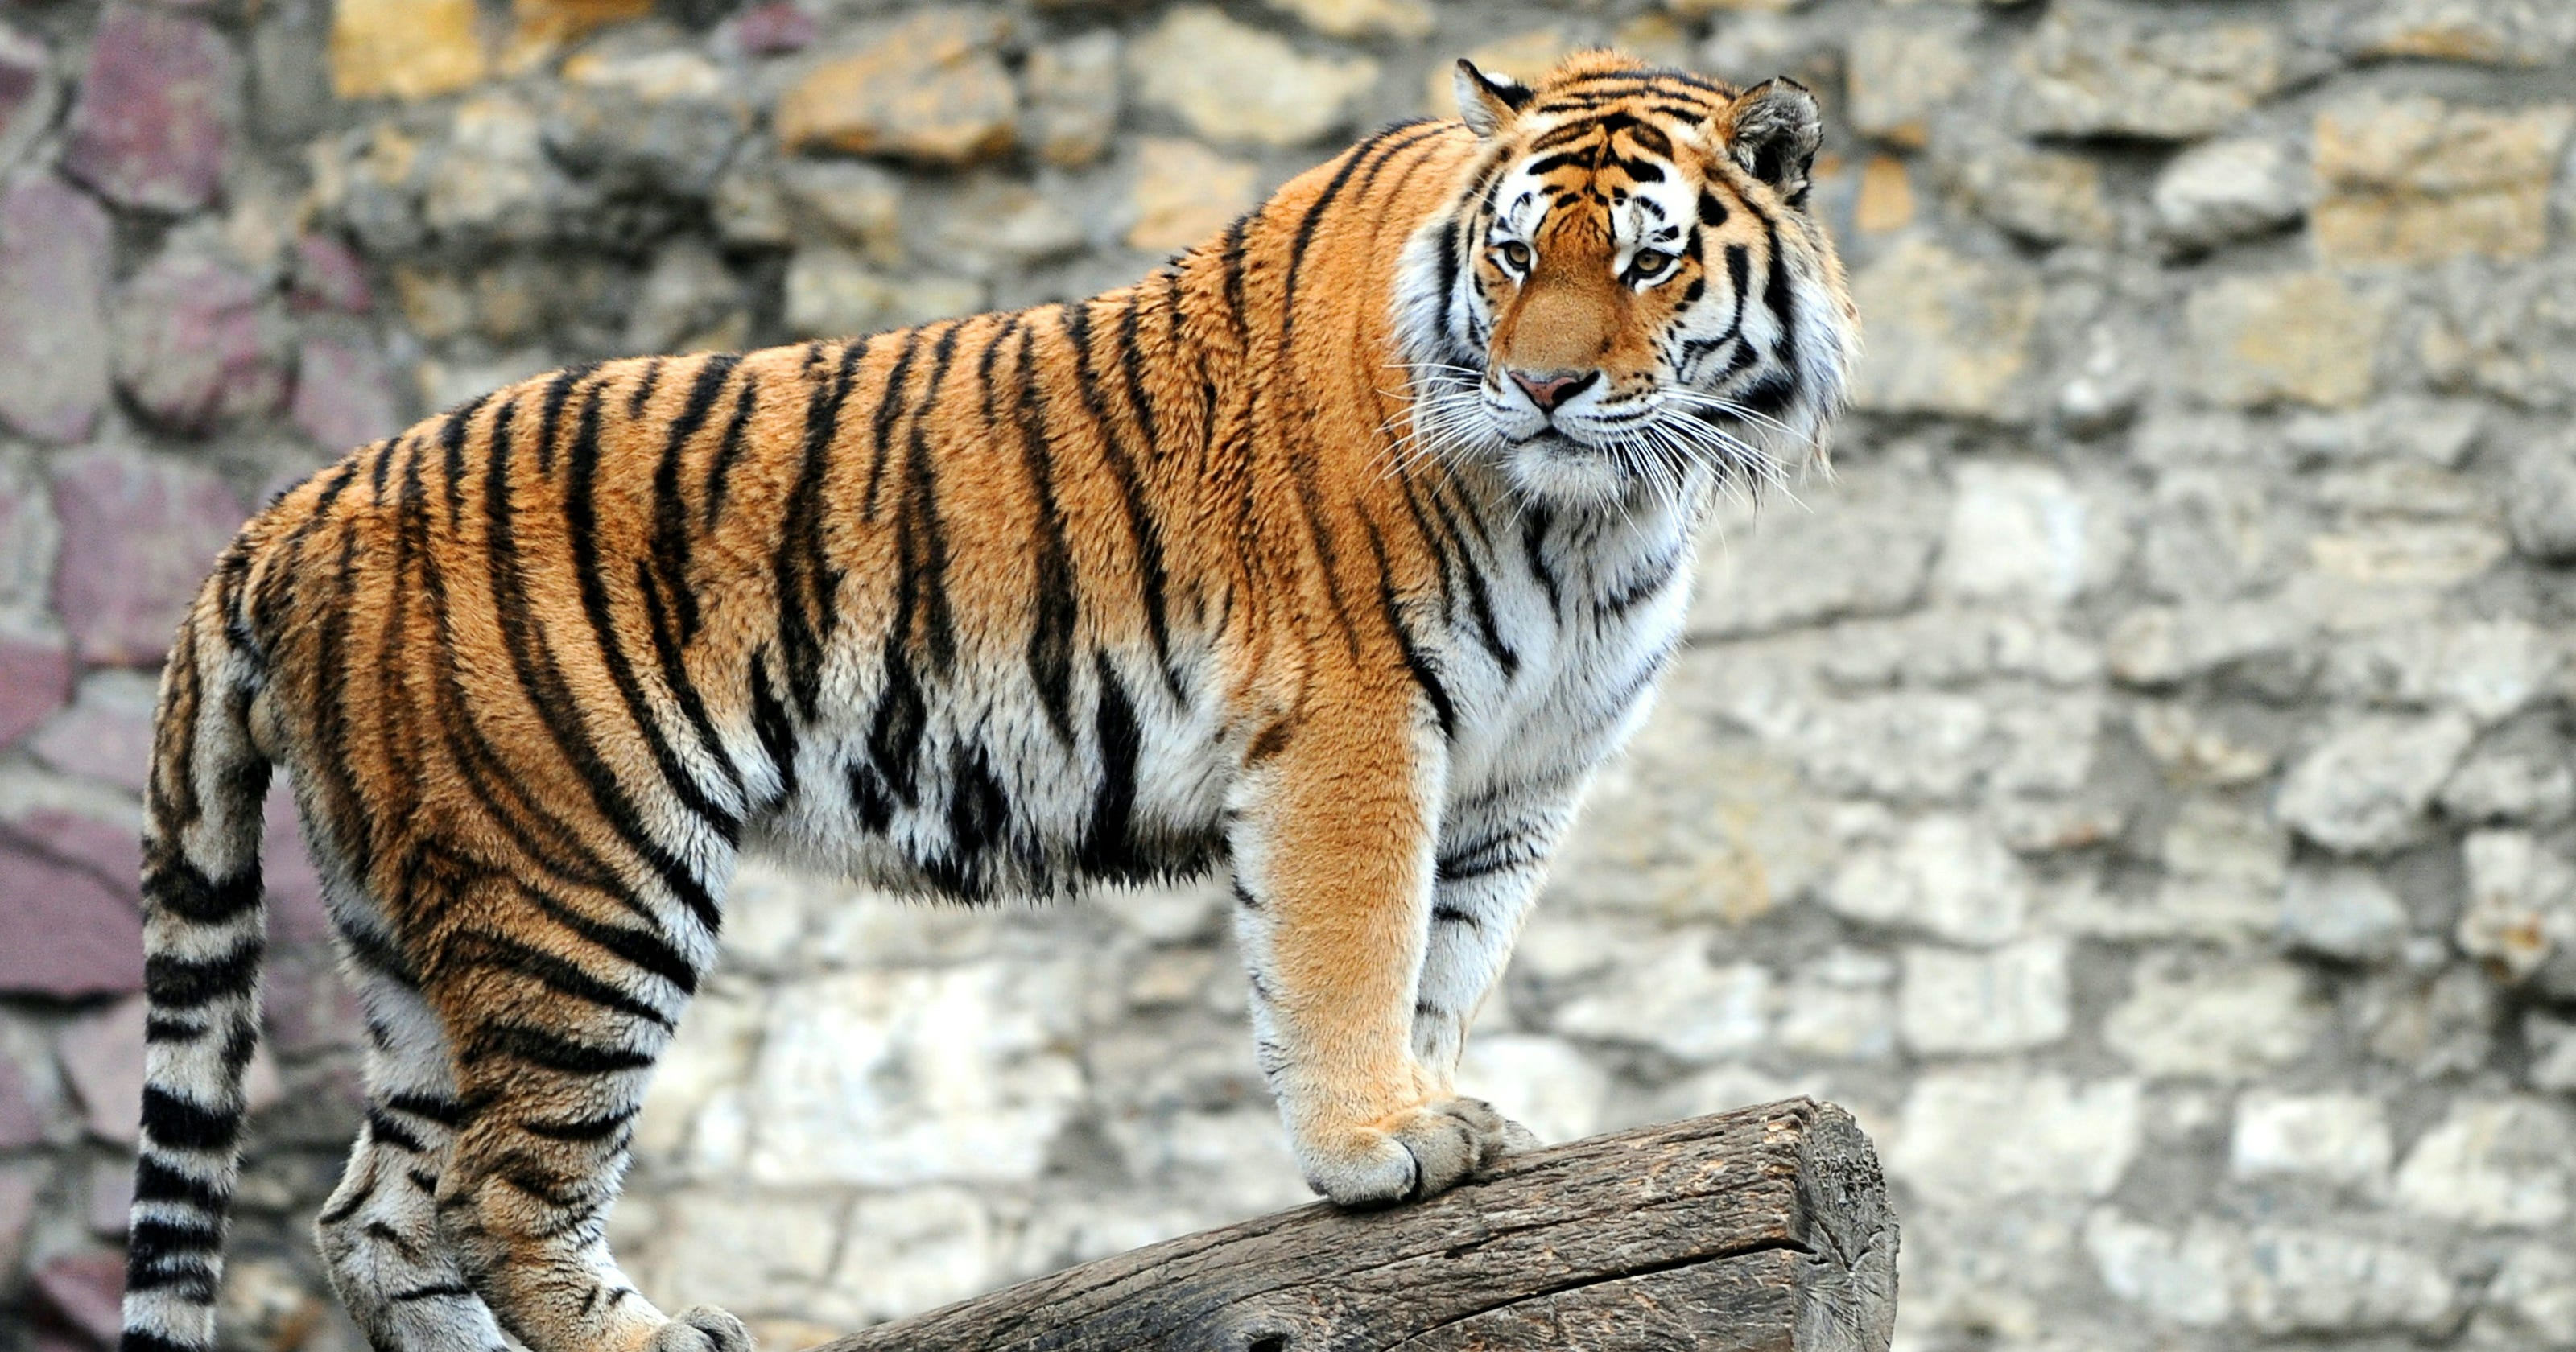 Online Daters Display Prowess With Tiger Profile Pics